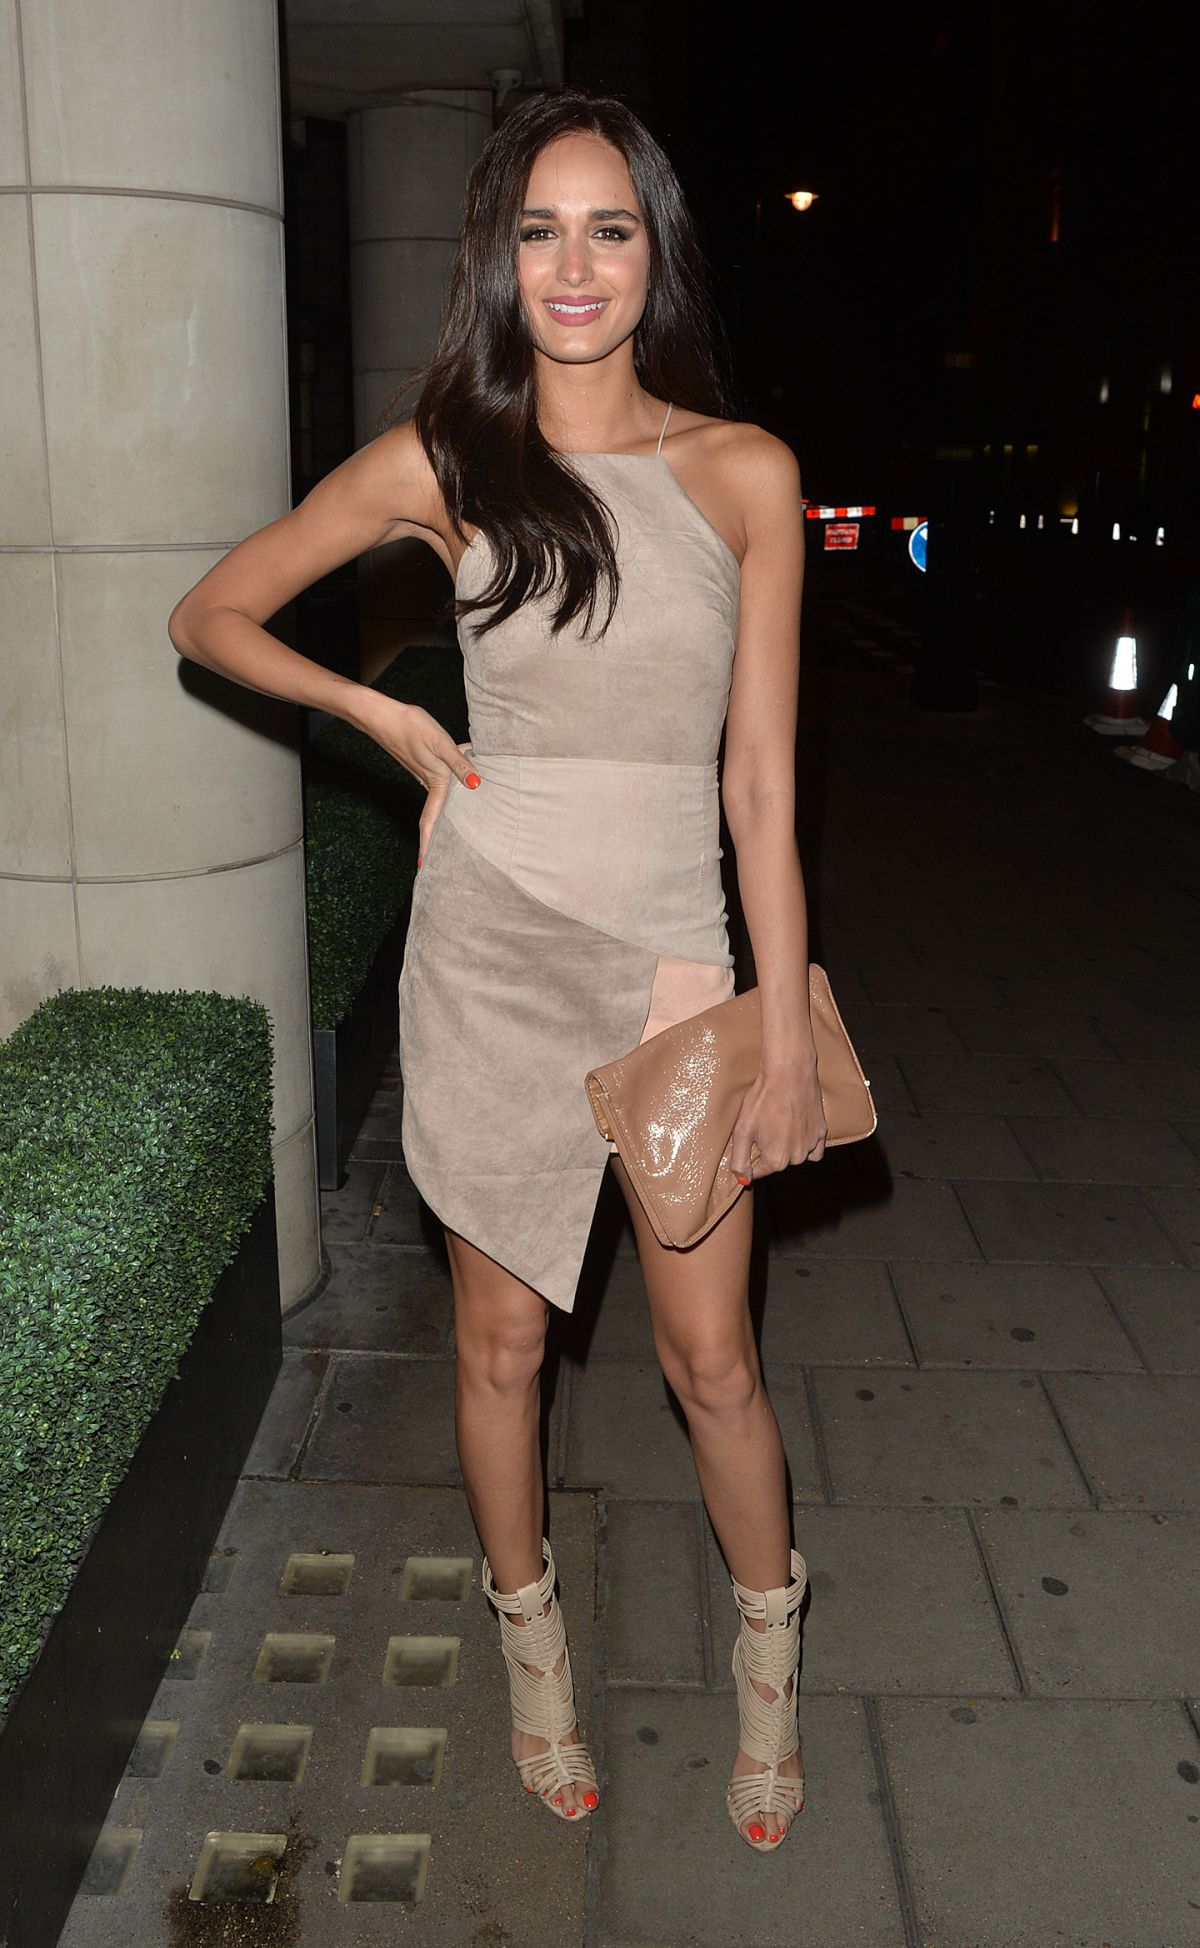 ANITA KAUSHIK at Novikov in London 07/02/2016